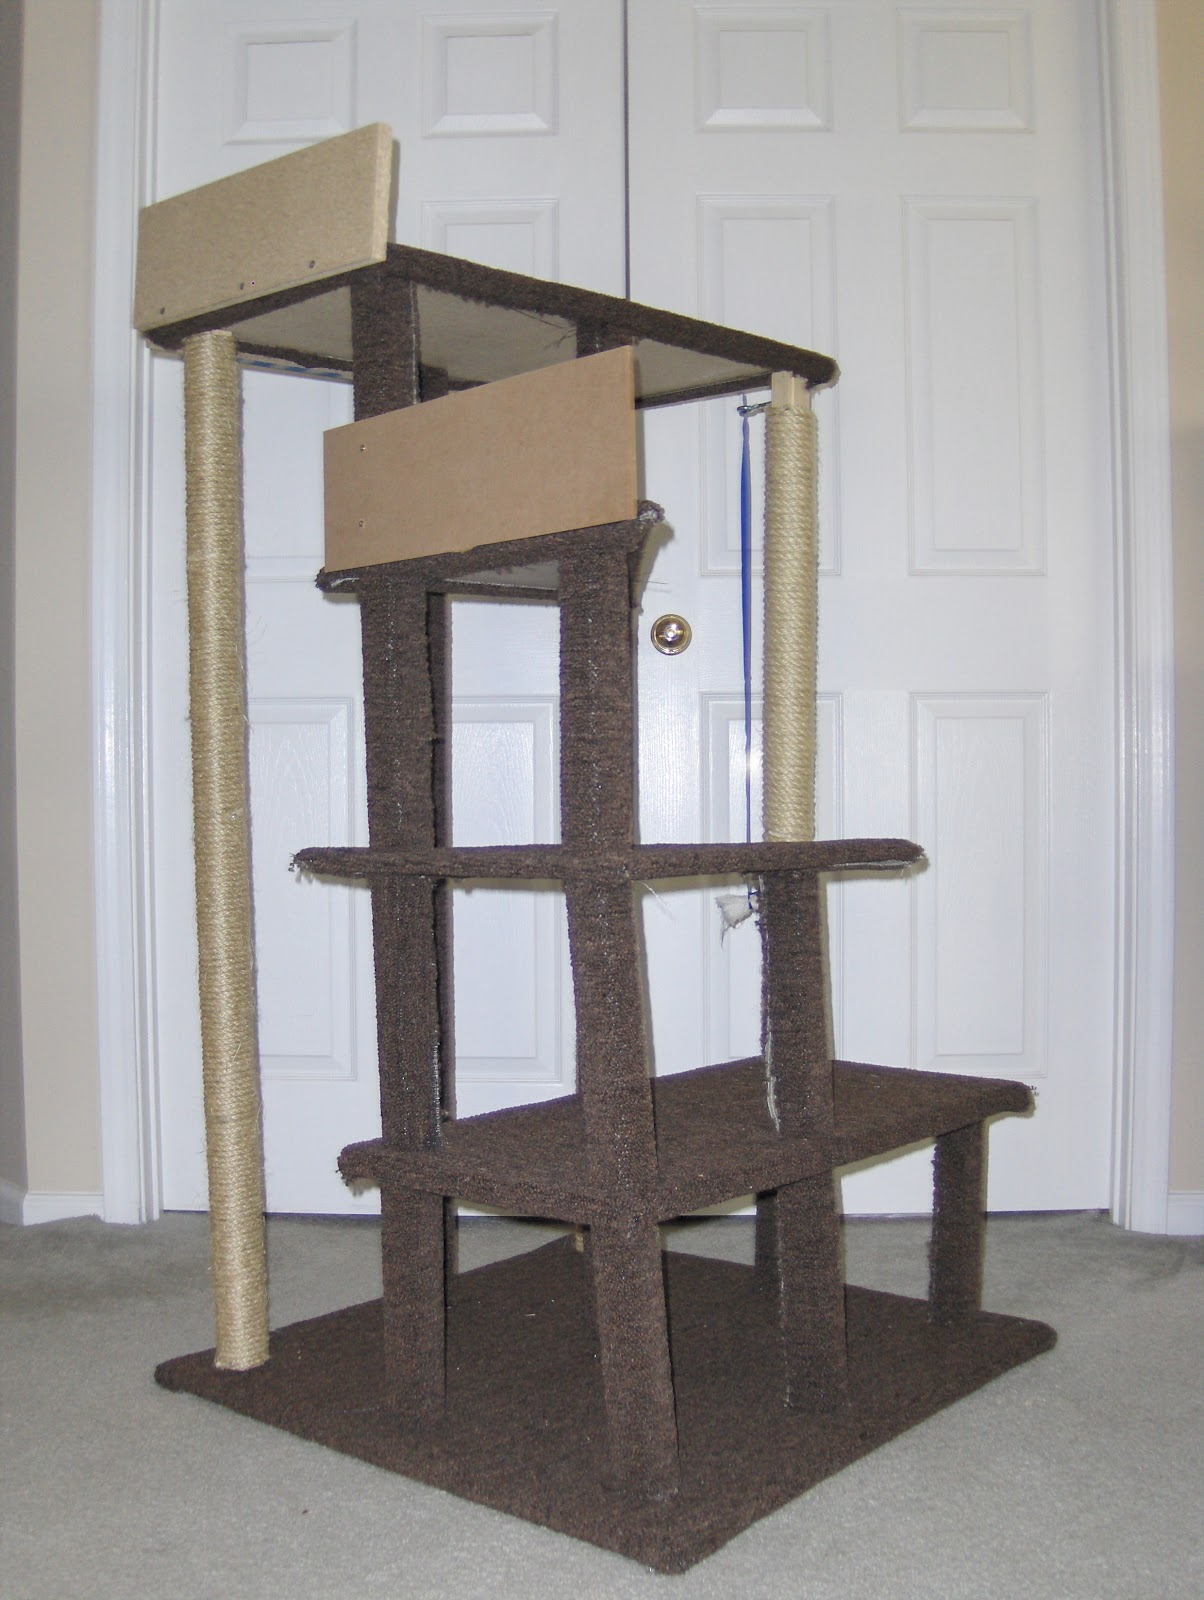 At the Fence: How to Make Inexpensive Cat Furniture